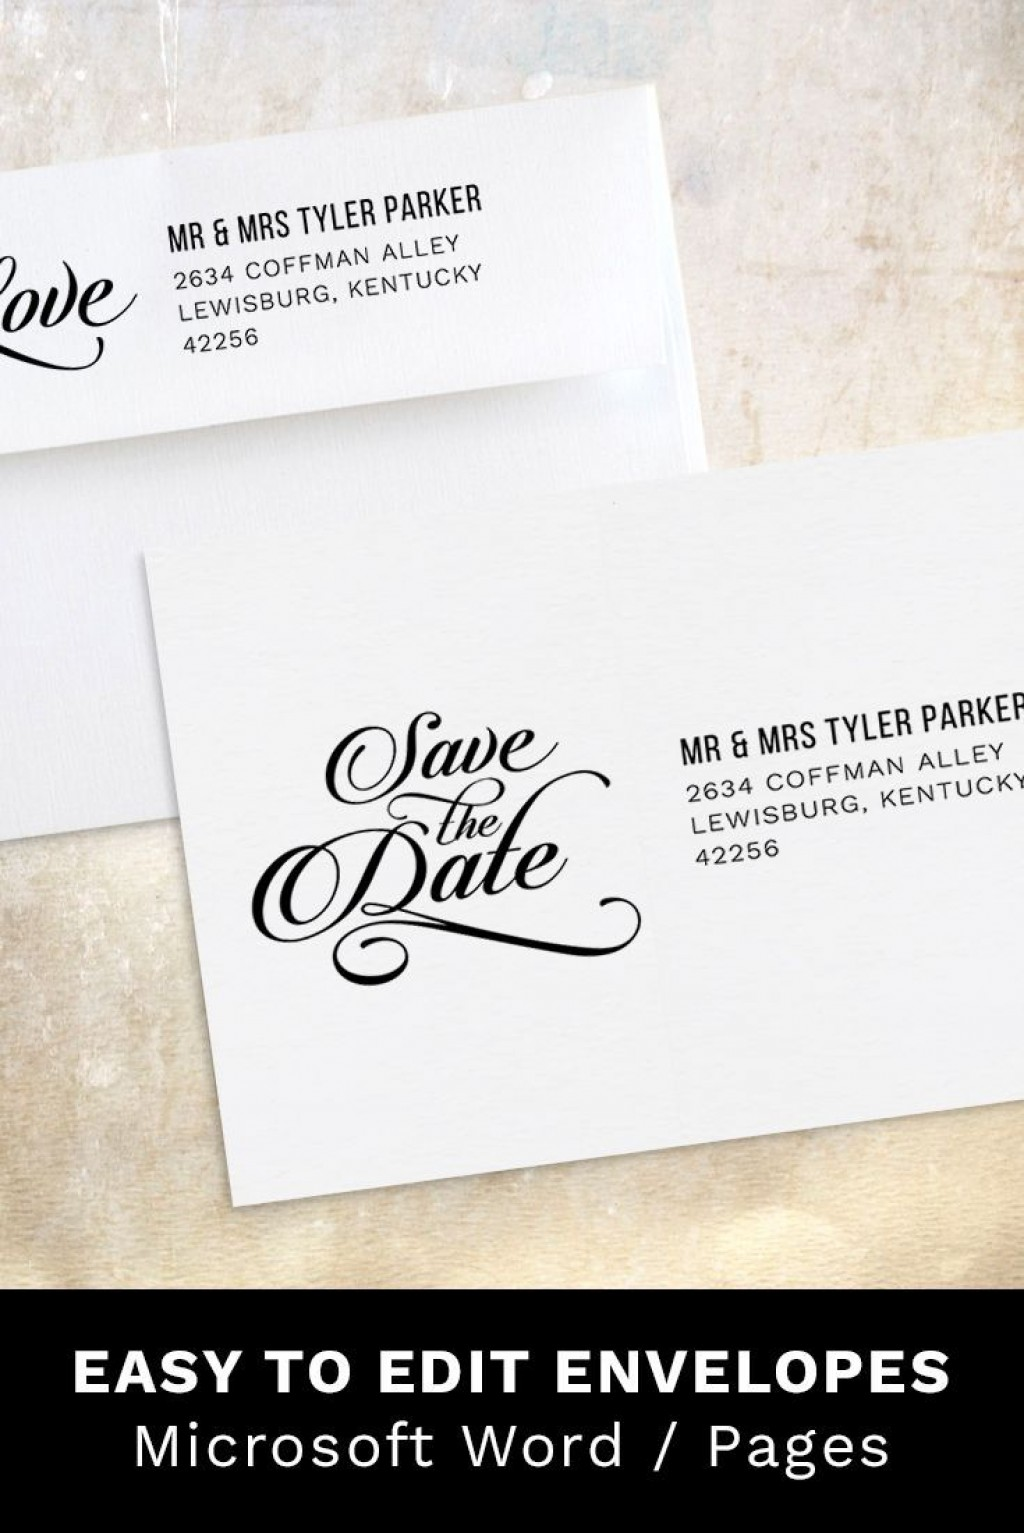 000 Shocking Save The Date Word Template High Def  Free Birthday For Microsoft Postcard FlyerLarge